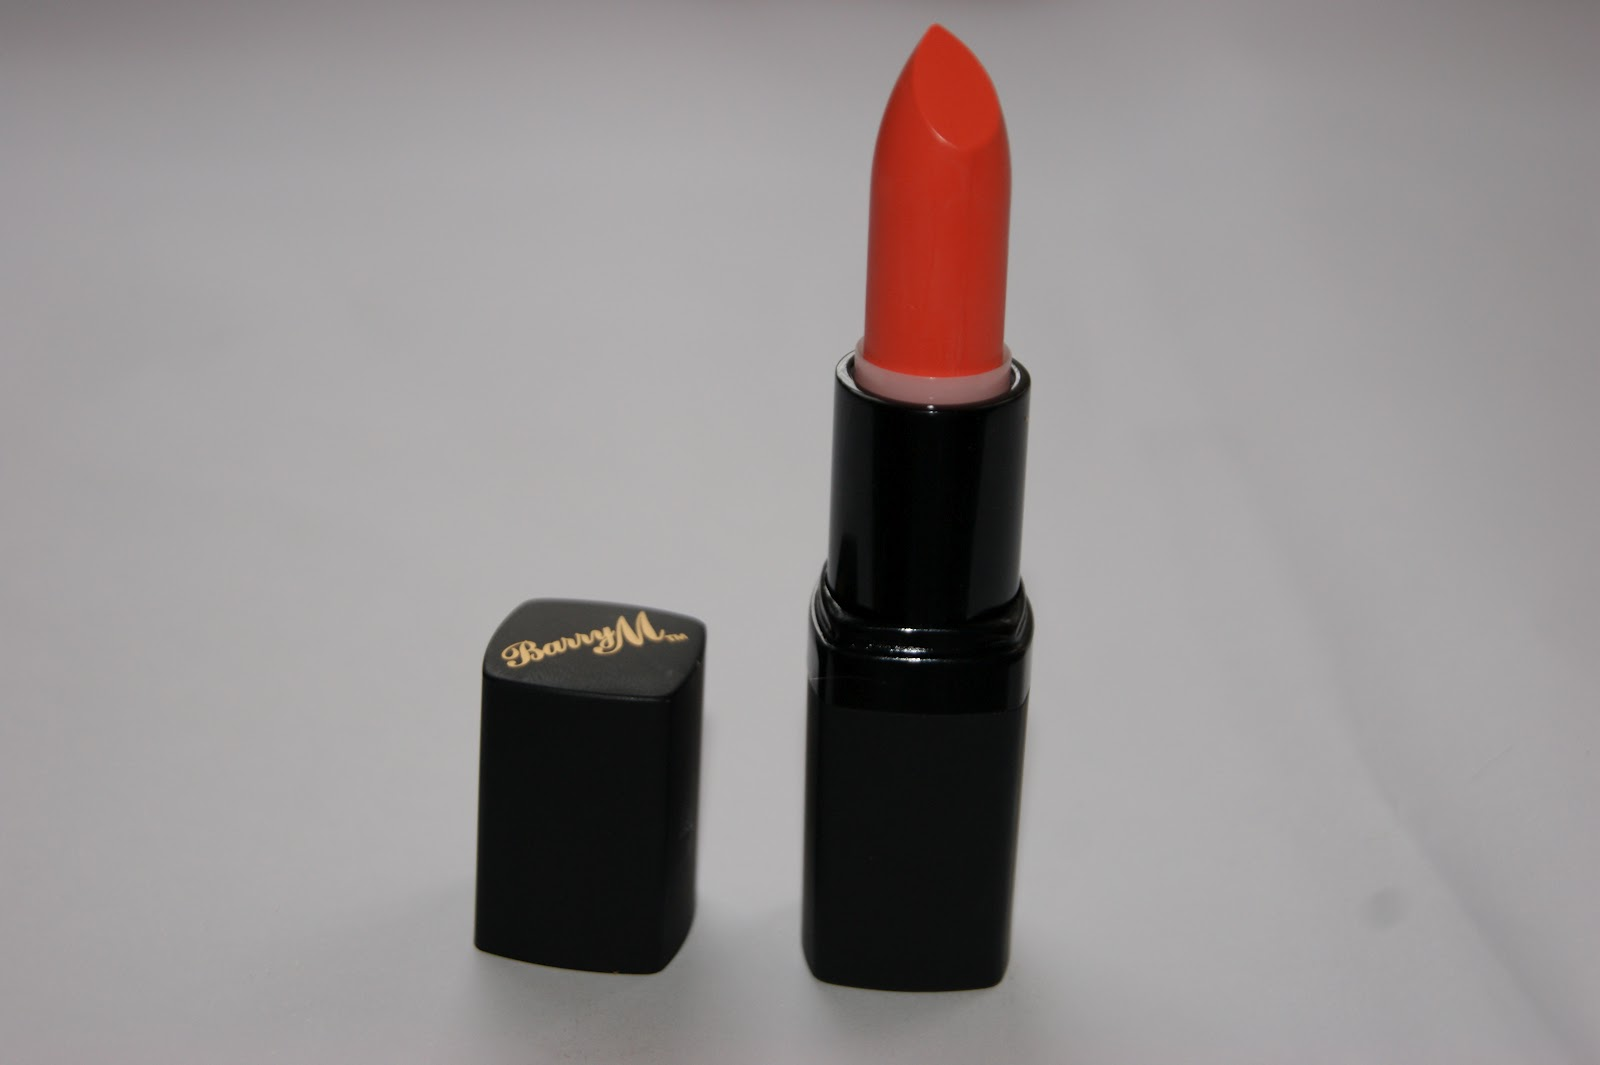 Barry M Lip Paint in Shade 54 - Review